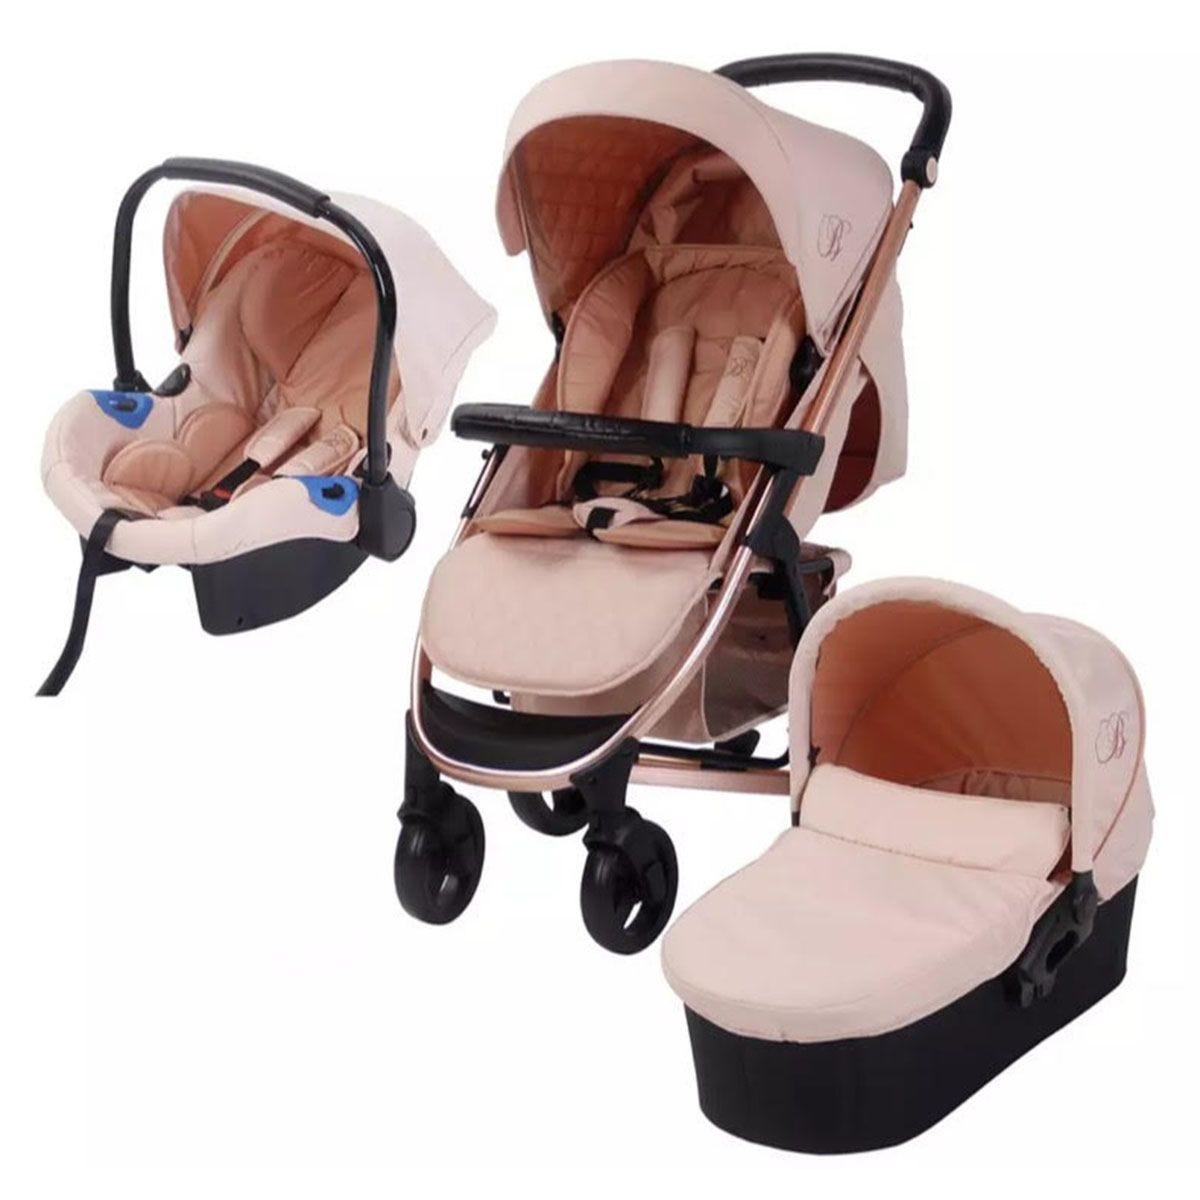 My Babiie Billie Faiers MB200 Travel System - Rose Gold and Blush